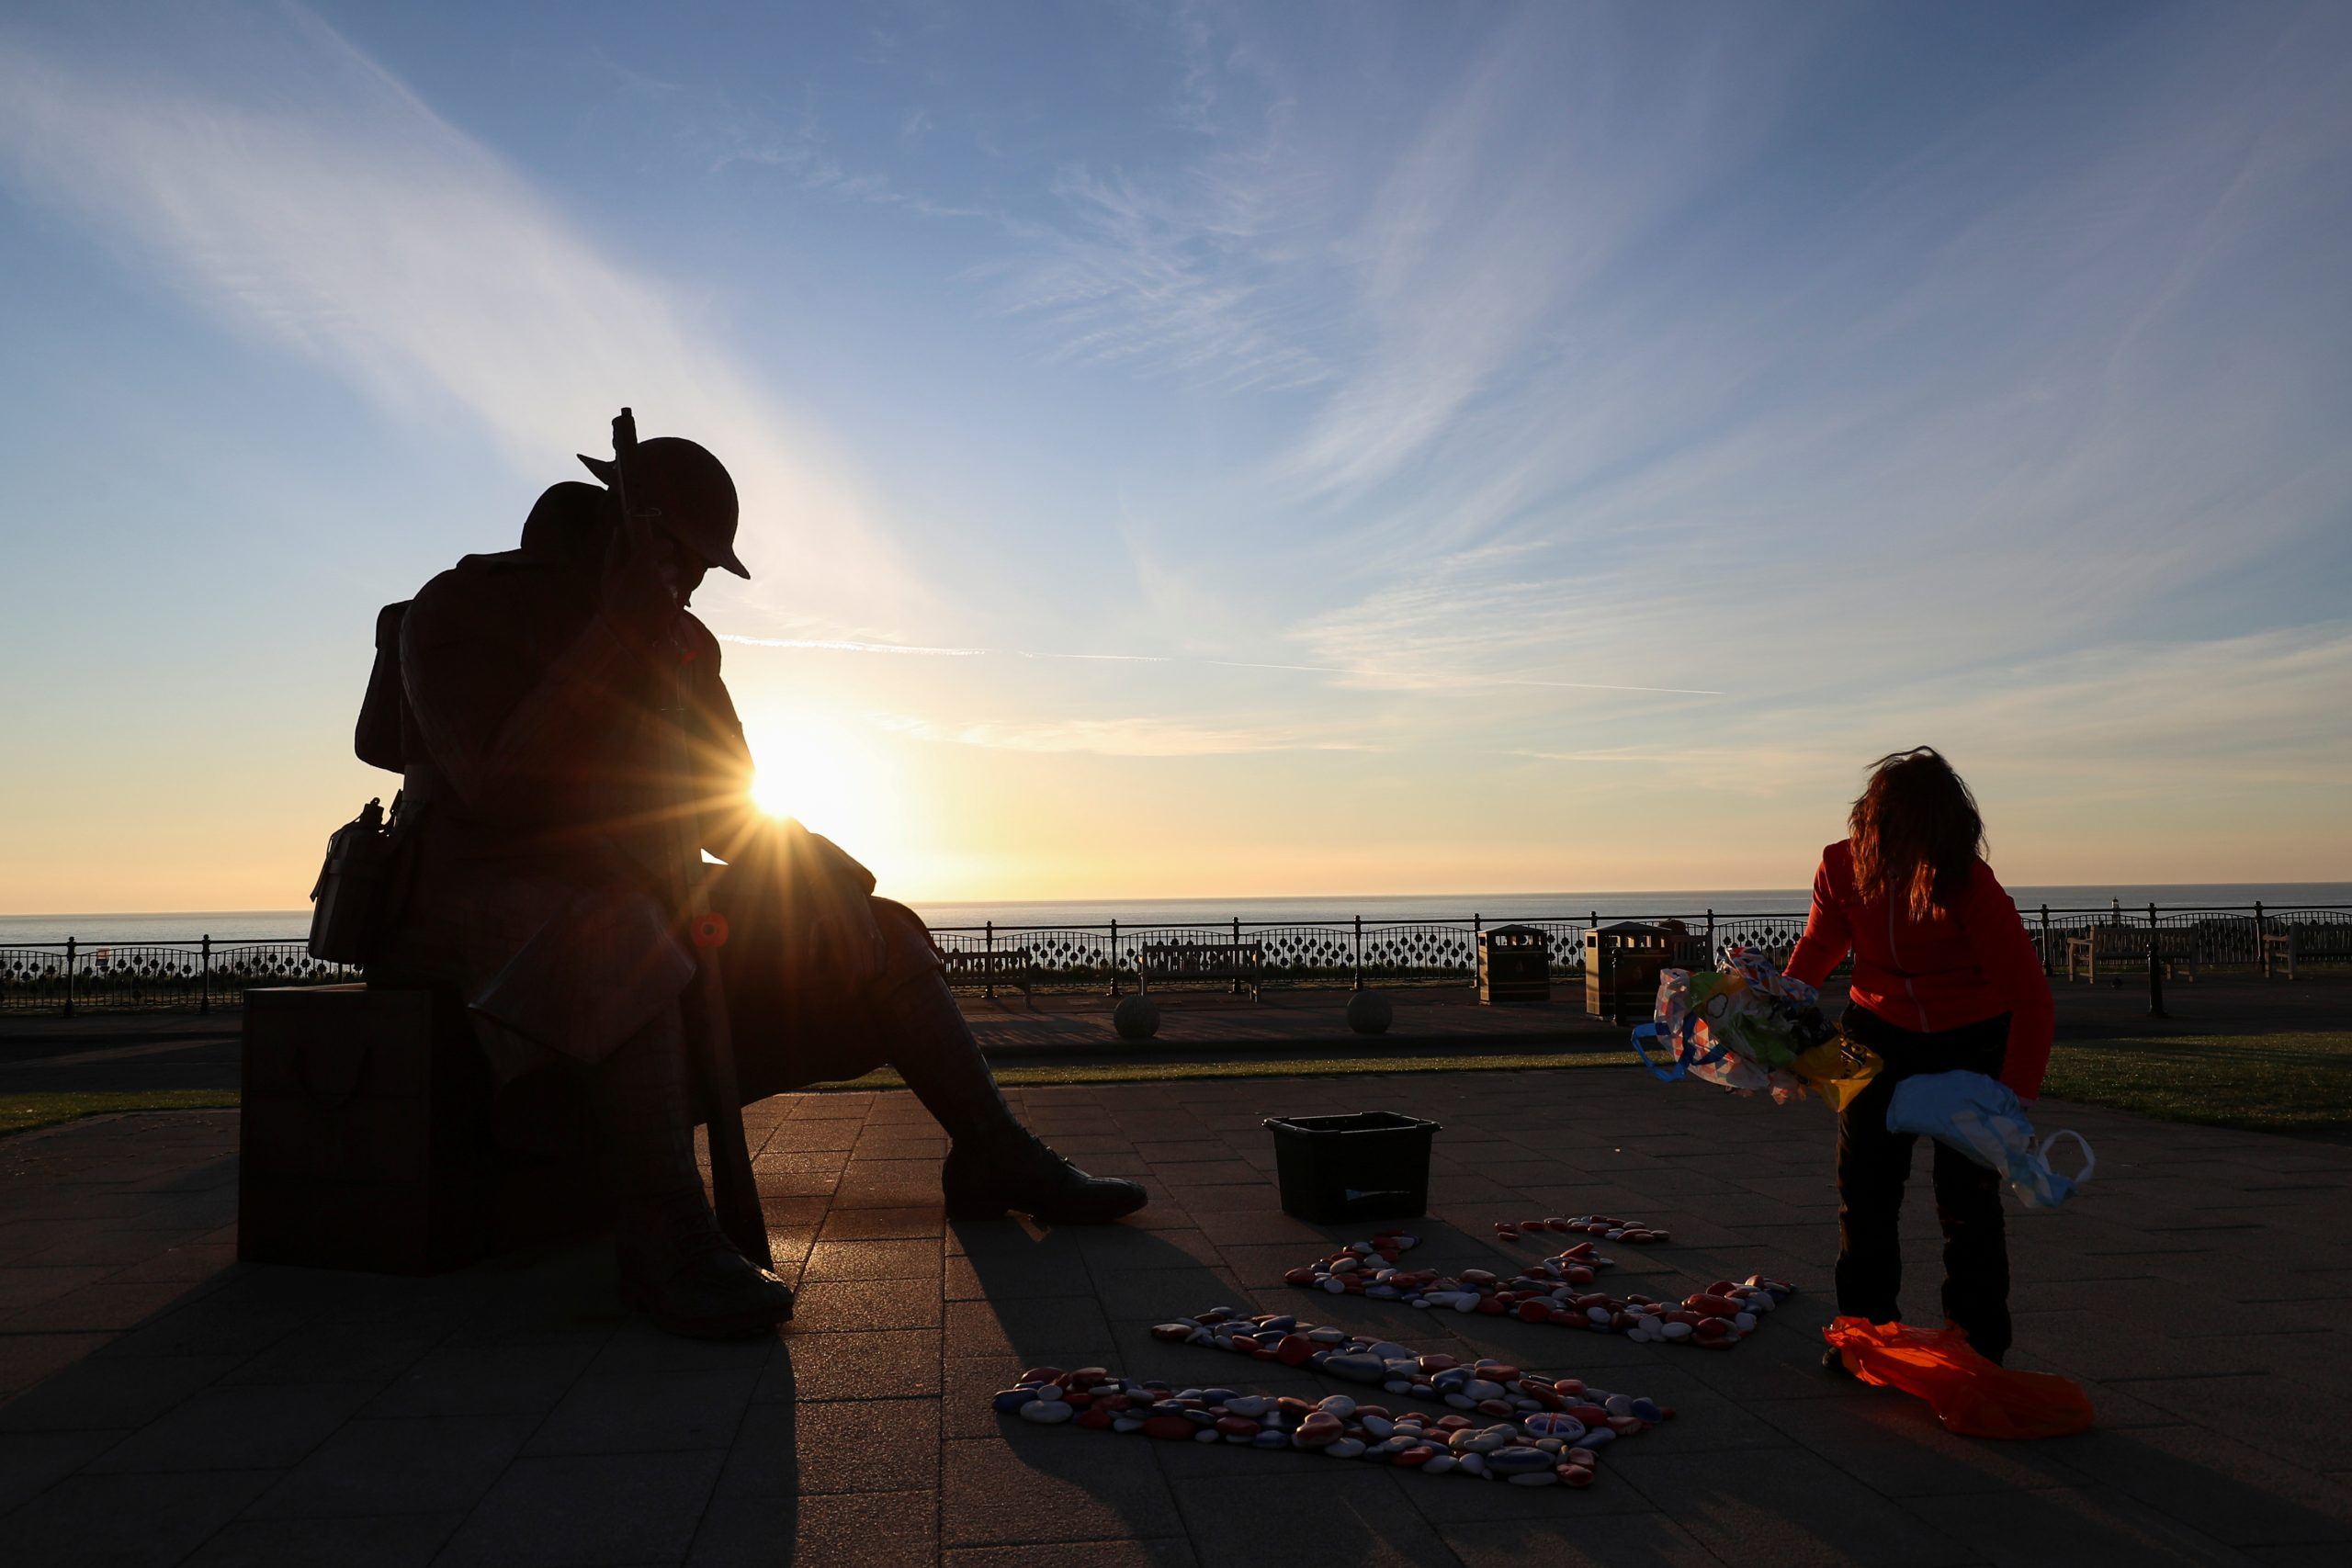 A woman is seen in front of the statue of soldier 'Tommy', a war statue by artist Ray Lonsdale, after making a sign with pebbles during sunrise on the 75th Anniversary of VE Day, in Seaham, on May 8, 2020. (REUTERS/Lee Smith)